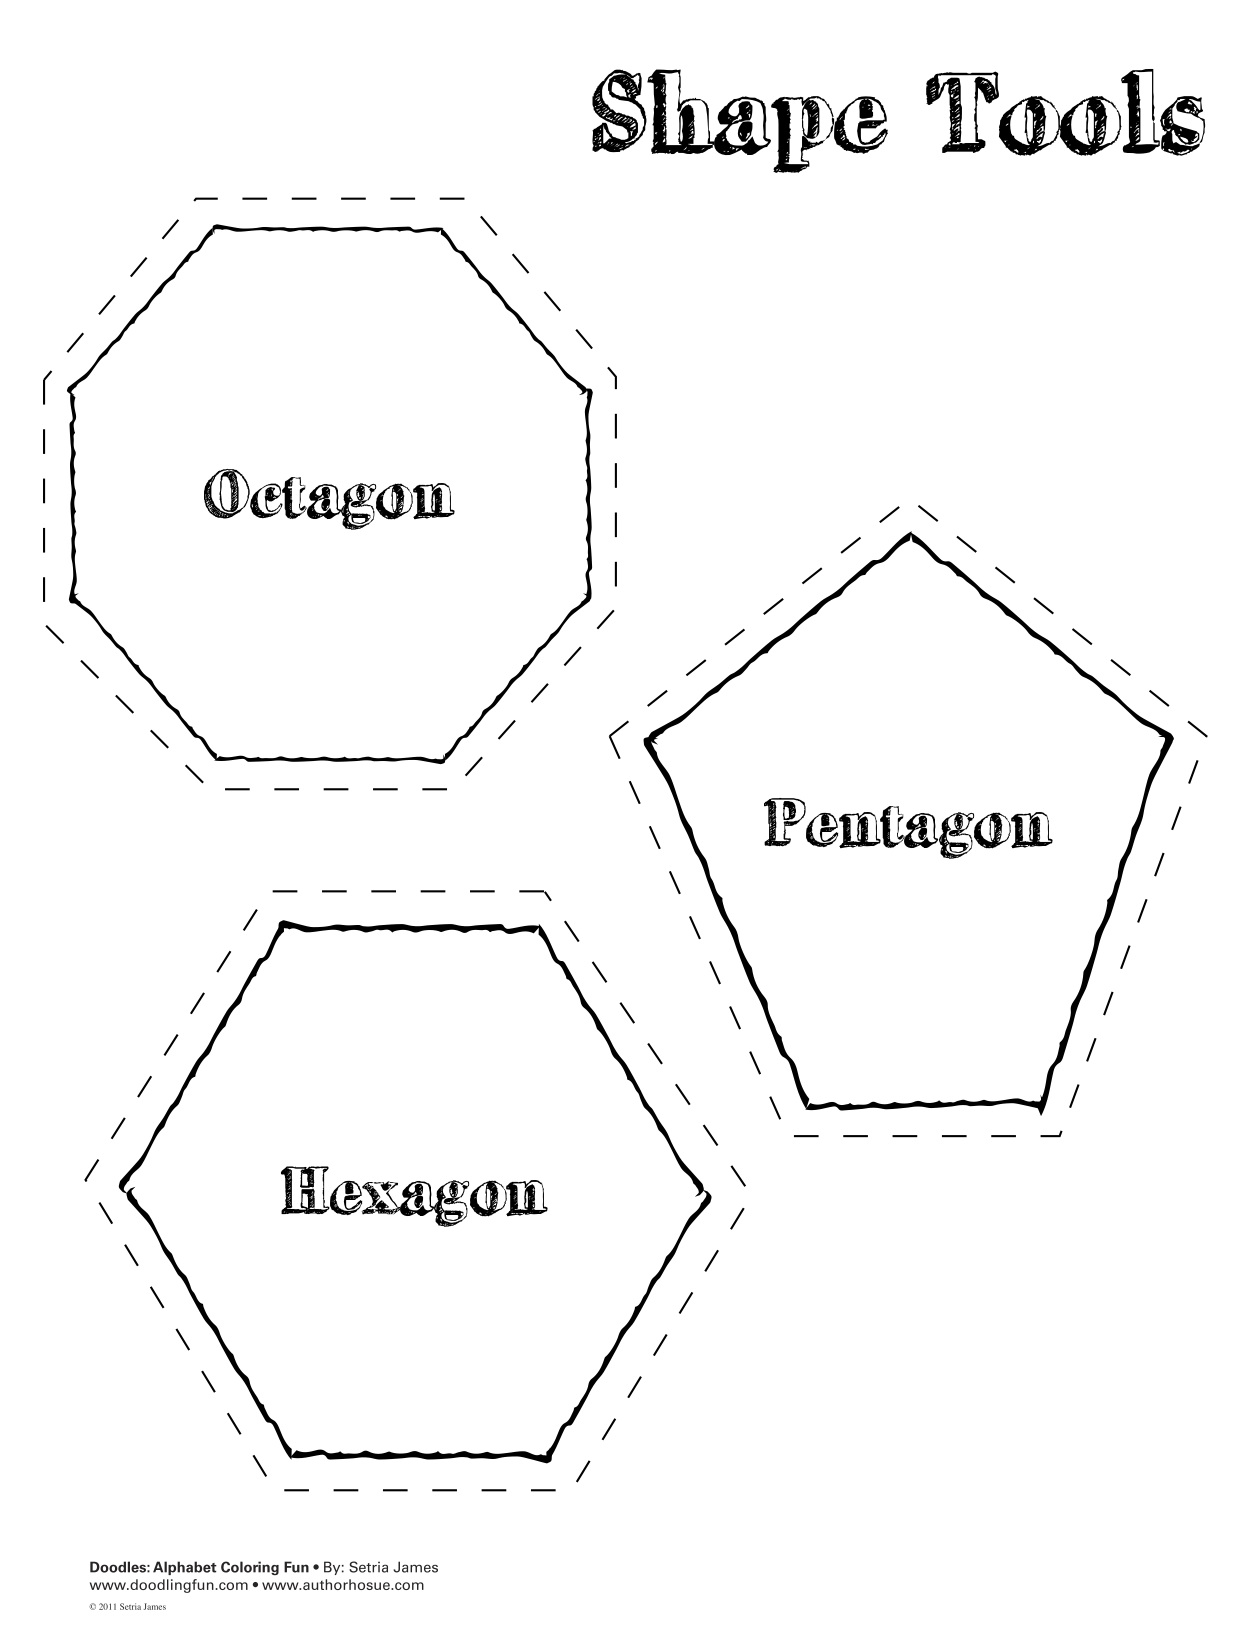 10 Best Images Of Basic Geometry Shapes Worksheets